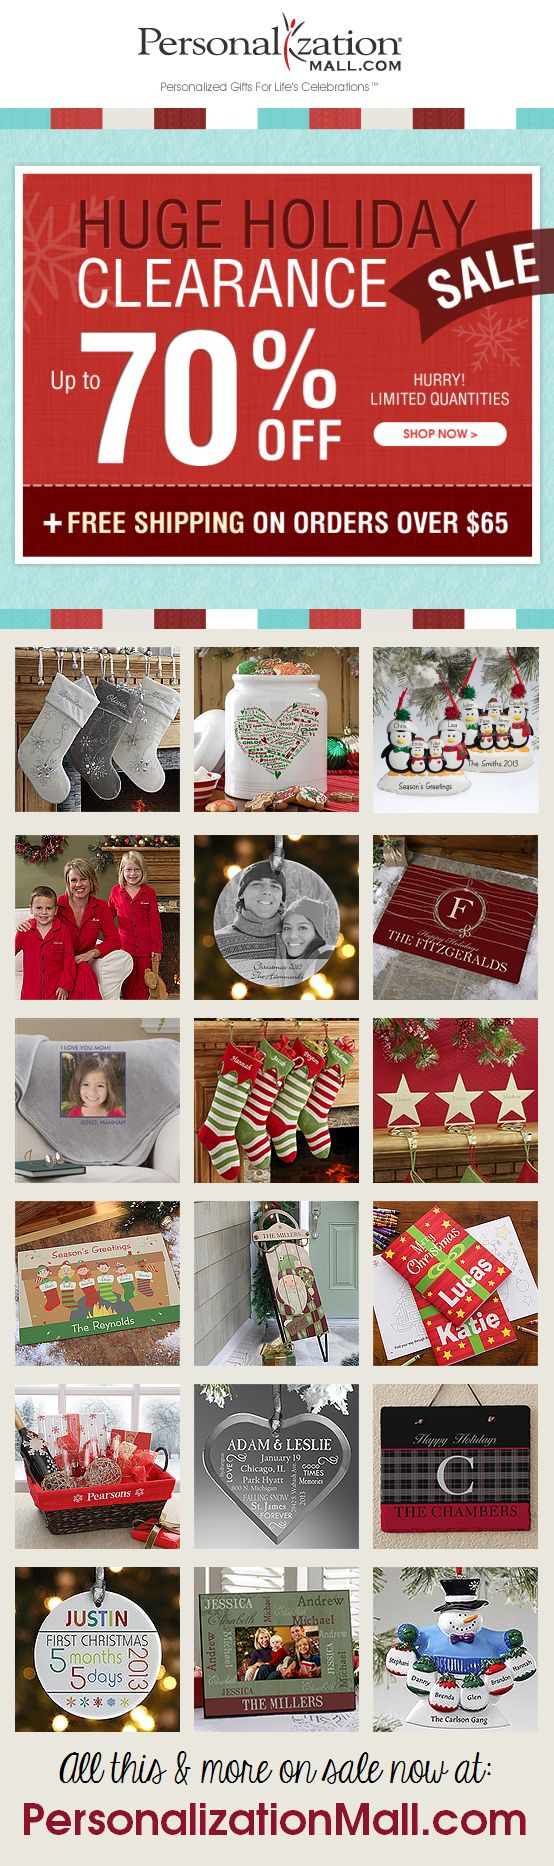 PersonalizationMall is having a HUGE Christmas Clearance Sale! You can save up to 70% off Personalized Christmas Stockings, Christmas Ornaments and all types of adorable gifts and decorations - buy now and save the gifts for next year! #Christmas #Sale #ClearanceChristmas Sales, Christmas Clearance, Christmas Winte, Christmas Stockings, Huge Christmas, Christmase Winte, Christmas Ornaments, Personalized Christmas